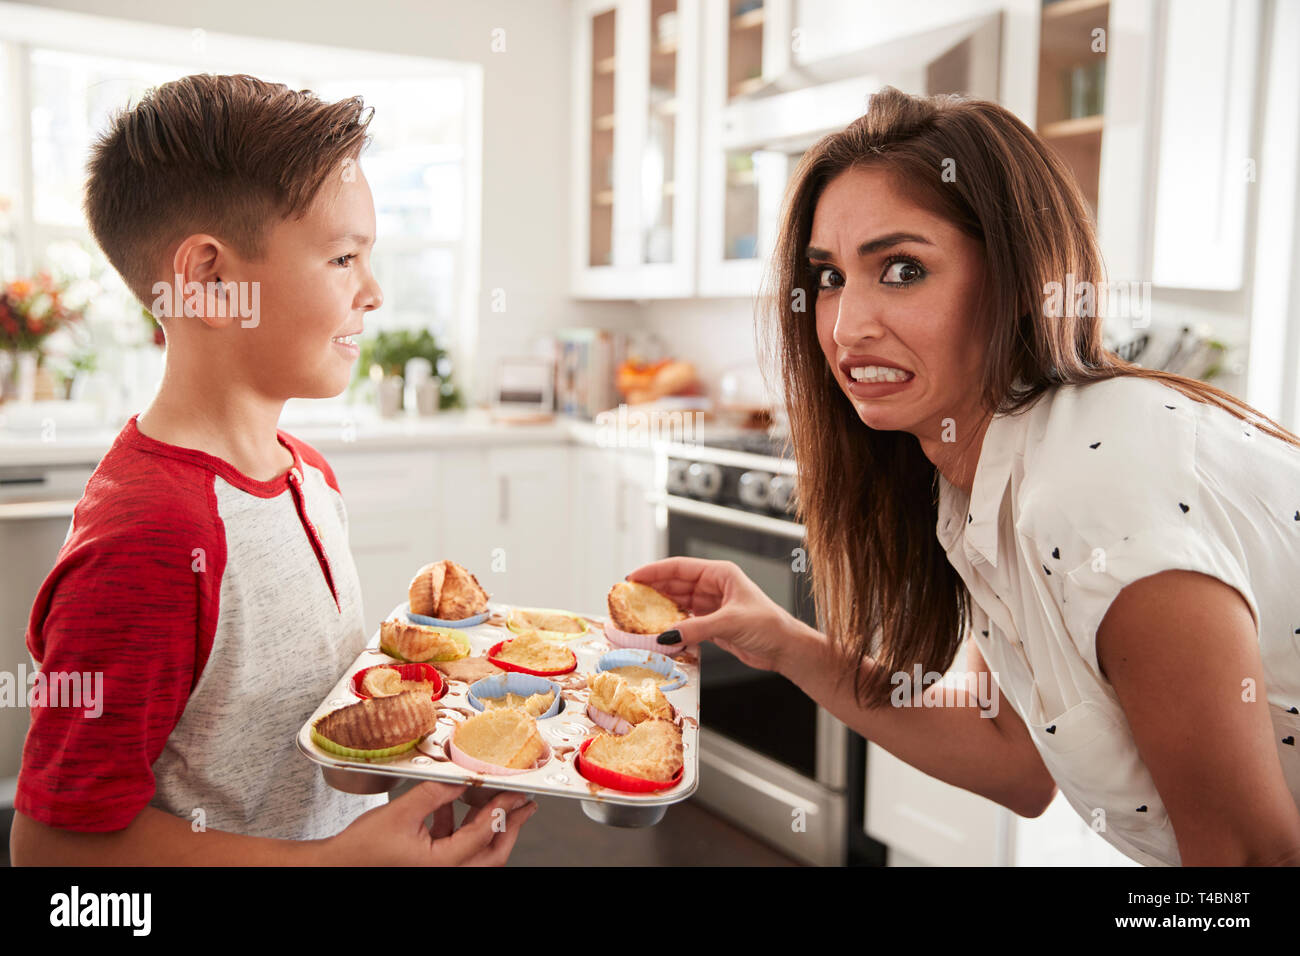 Pre-teen Hispanic boy presenting the cakes he has baked to his disappointed mother, close up - Stock Image